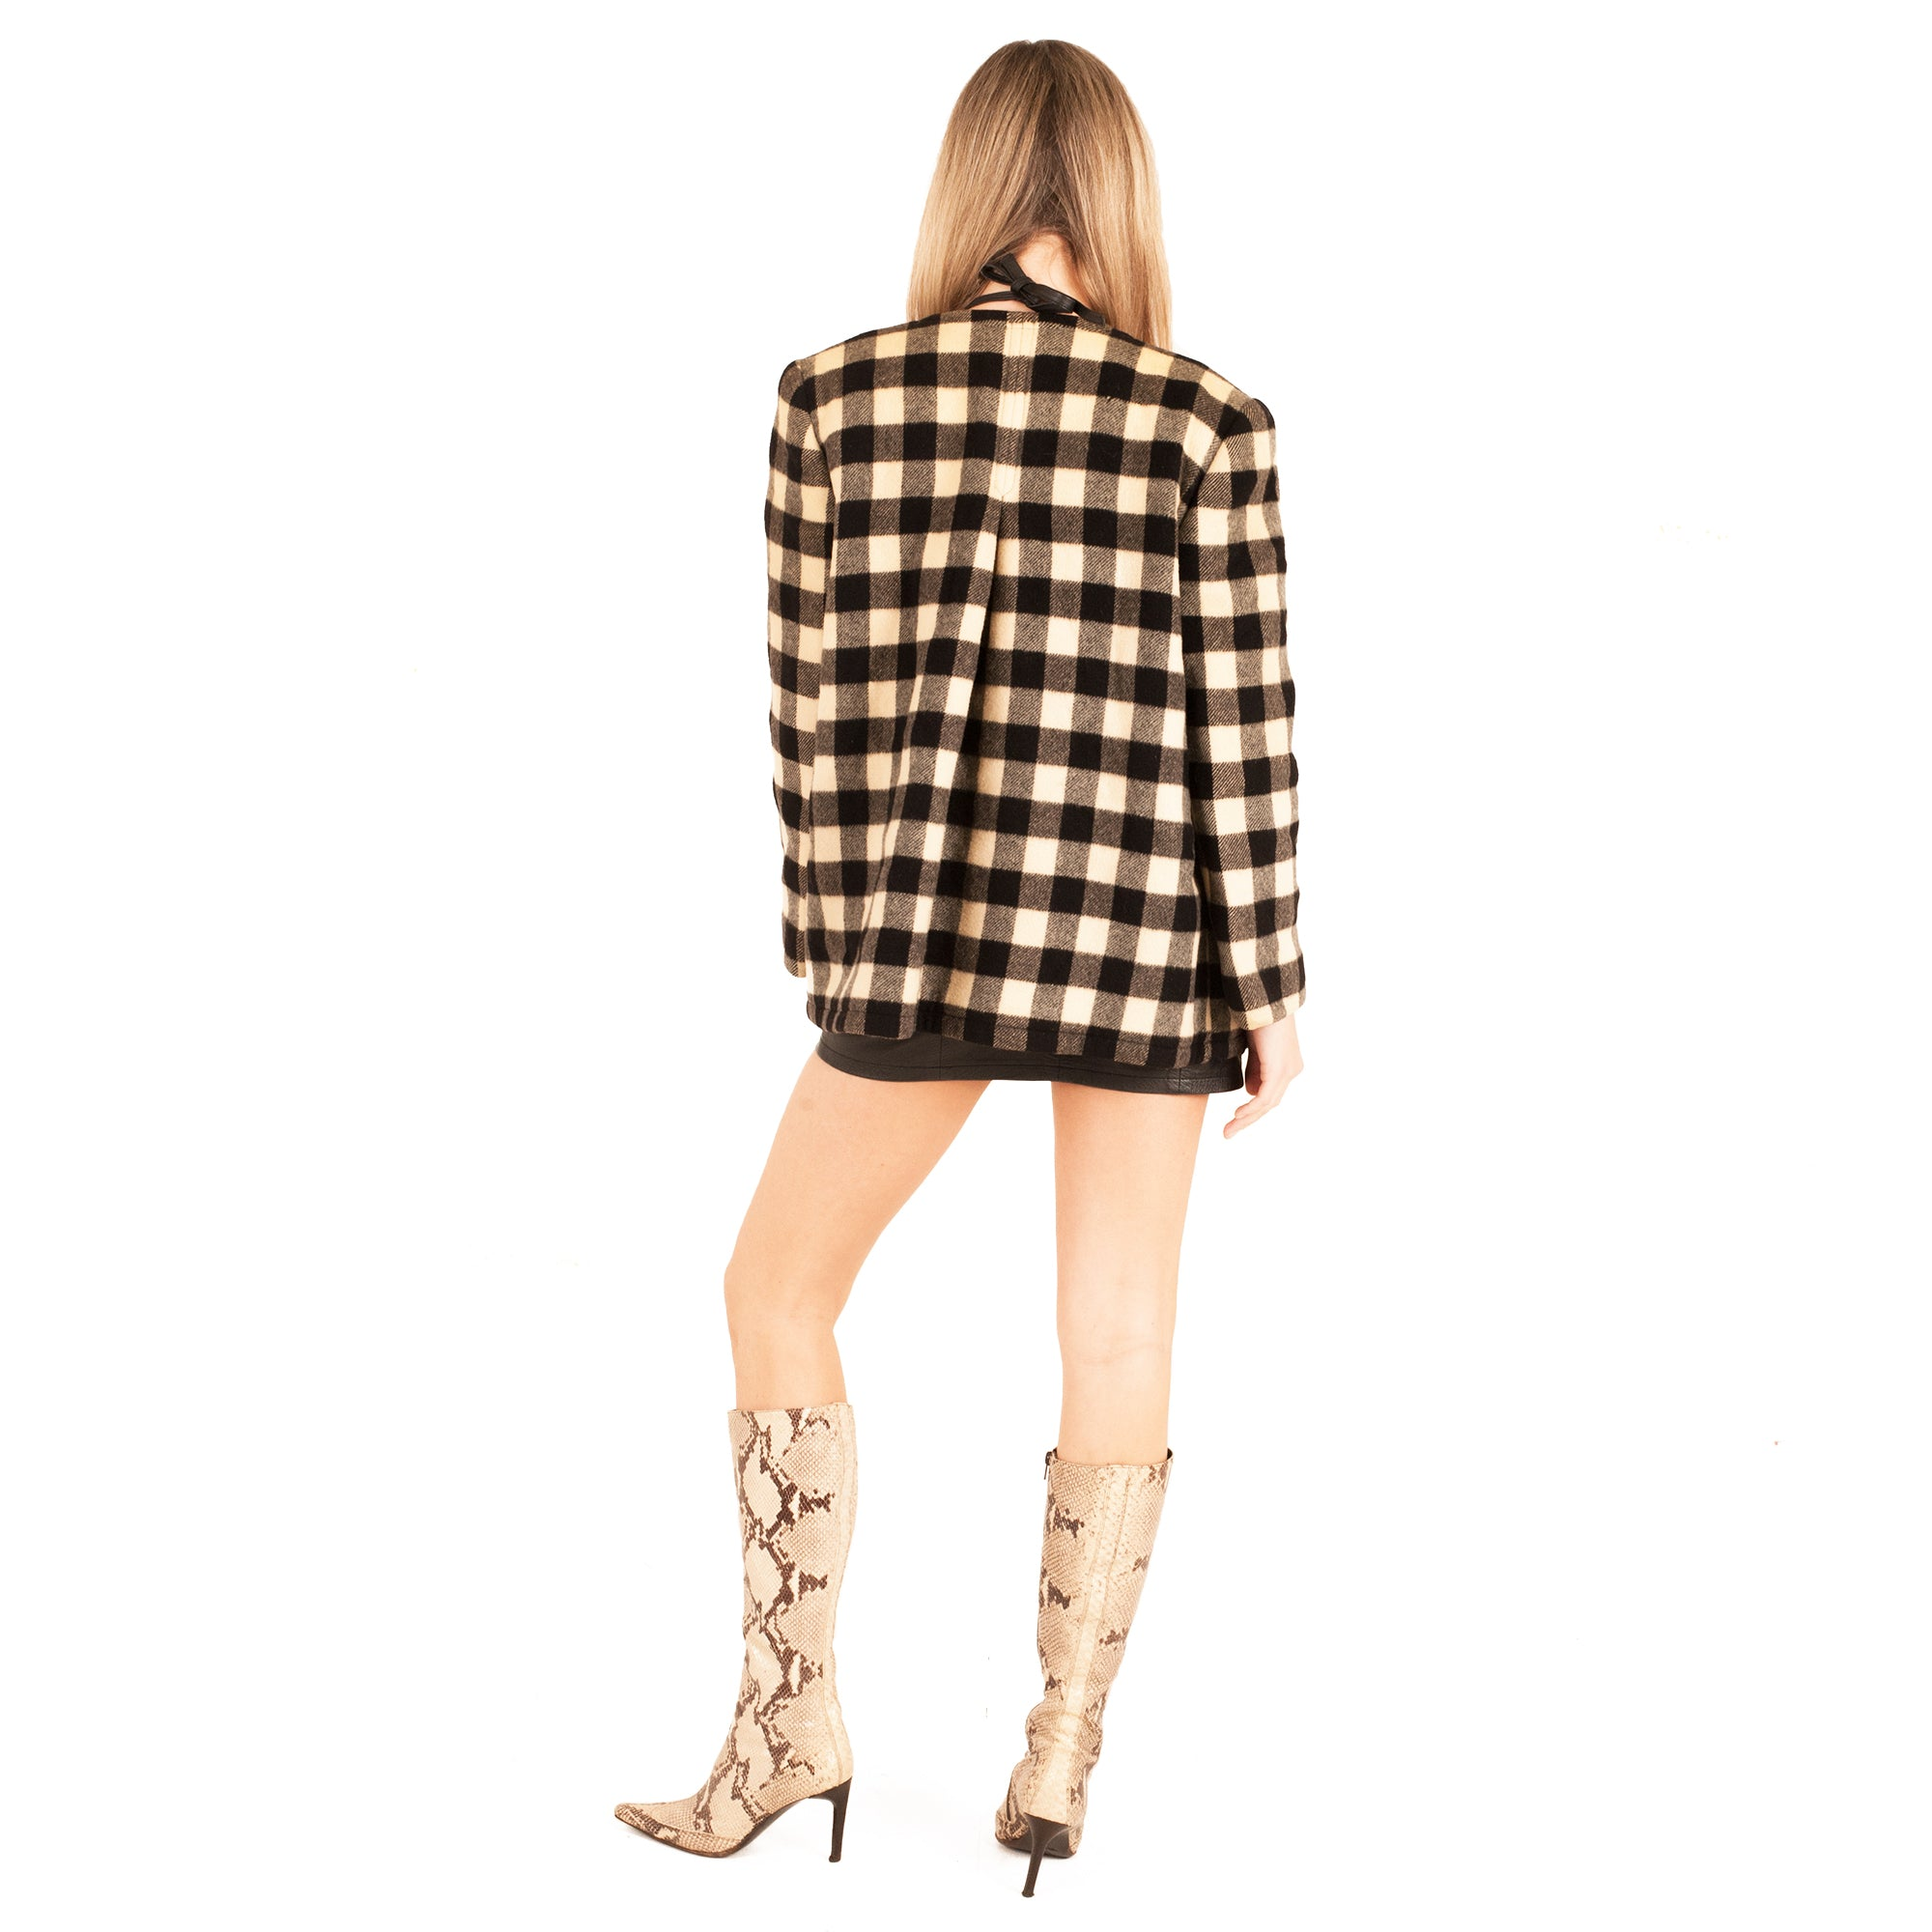 Valentino Jacket (Black/White Check) UK 6-10